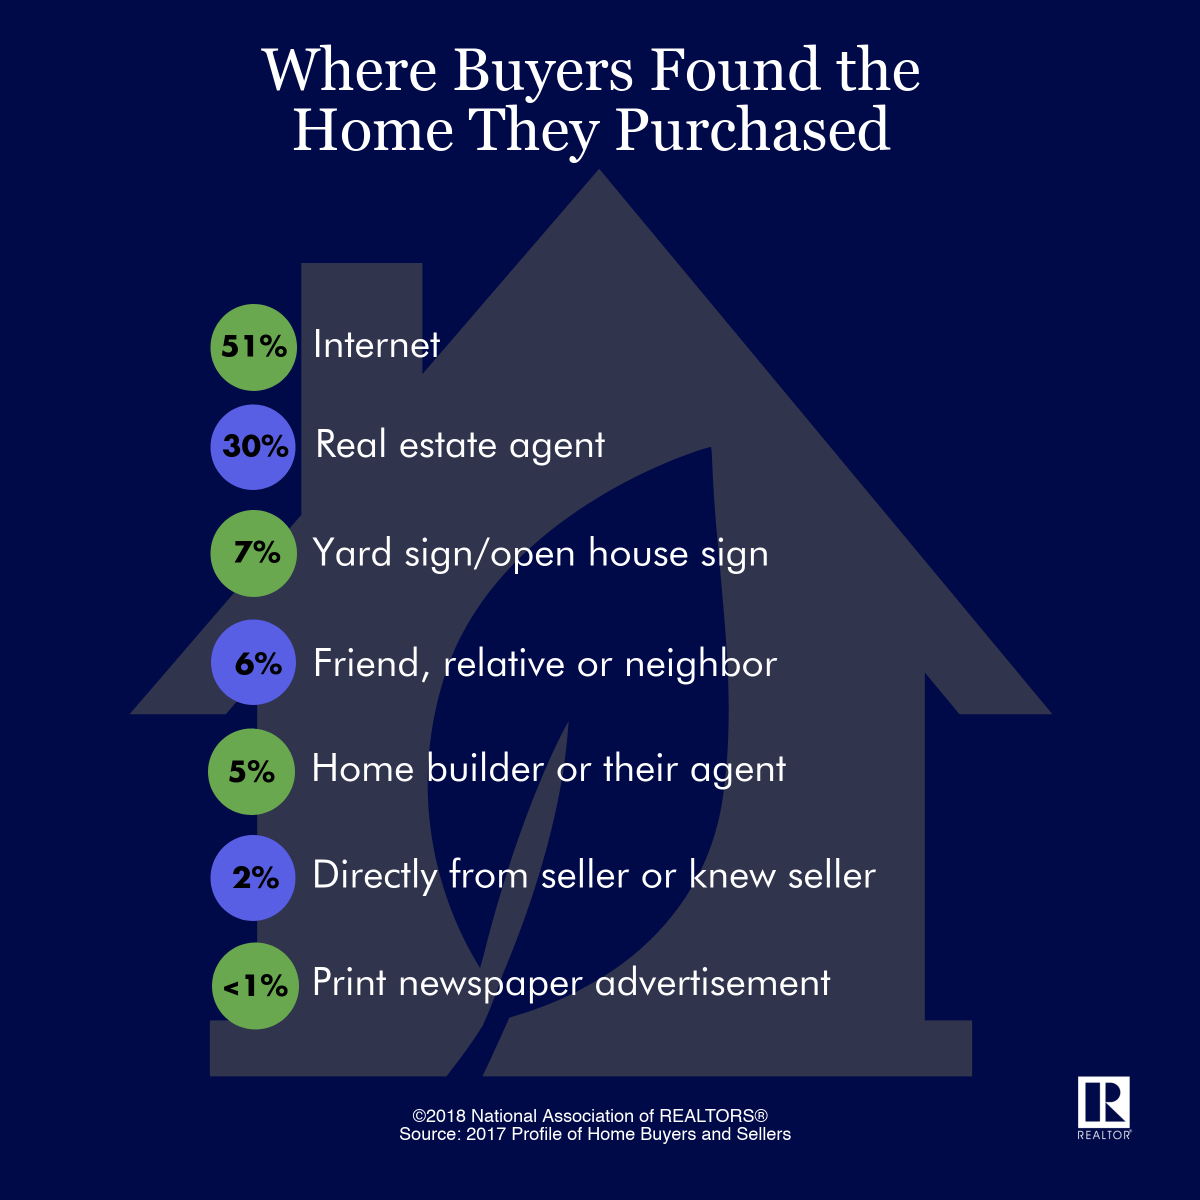 An infographic of where buyers found the home they purchased.